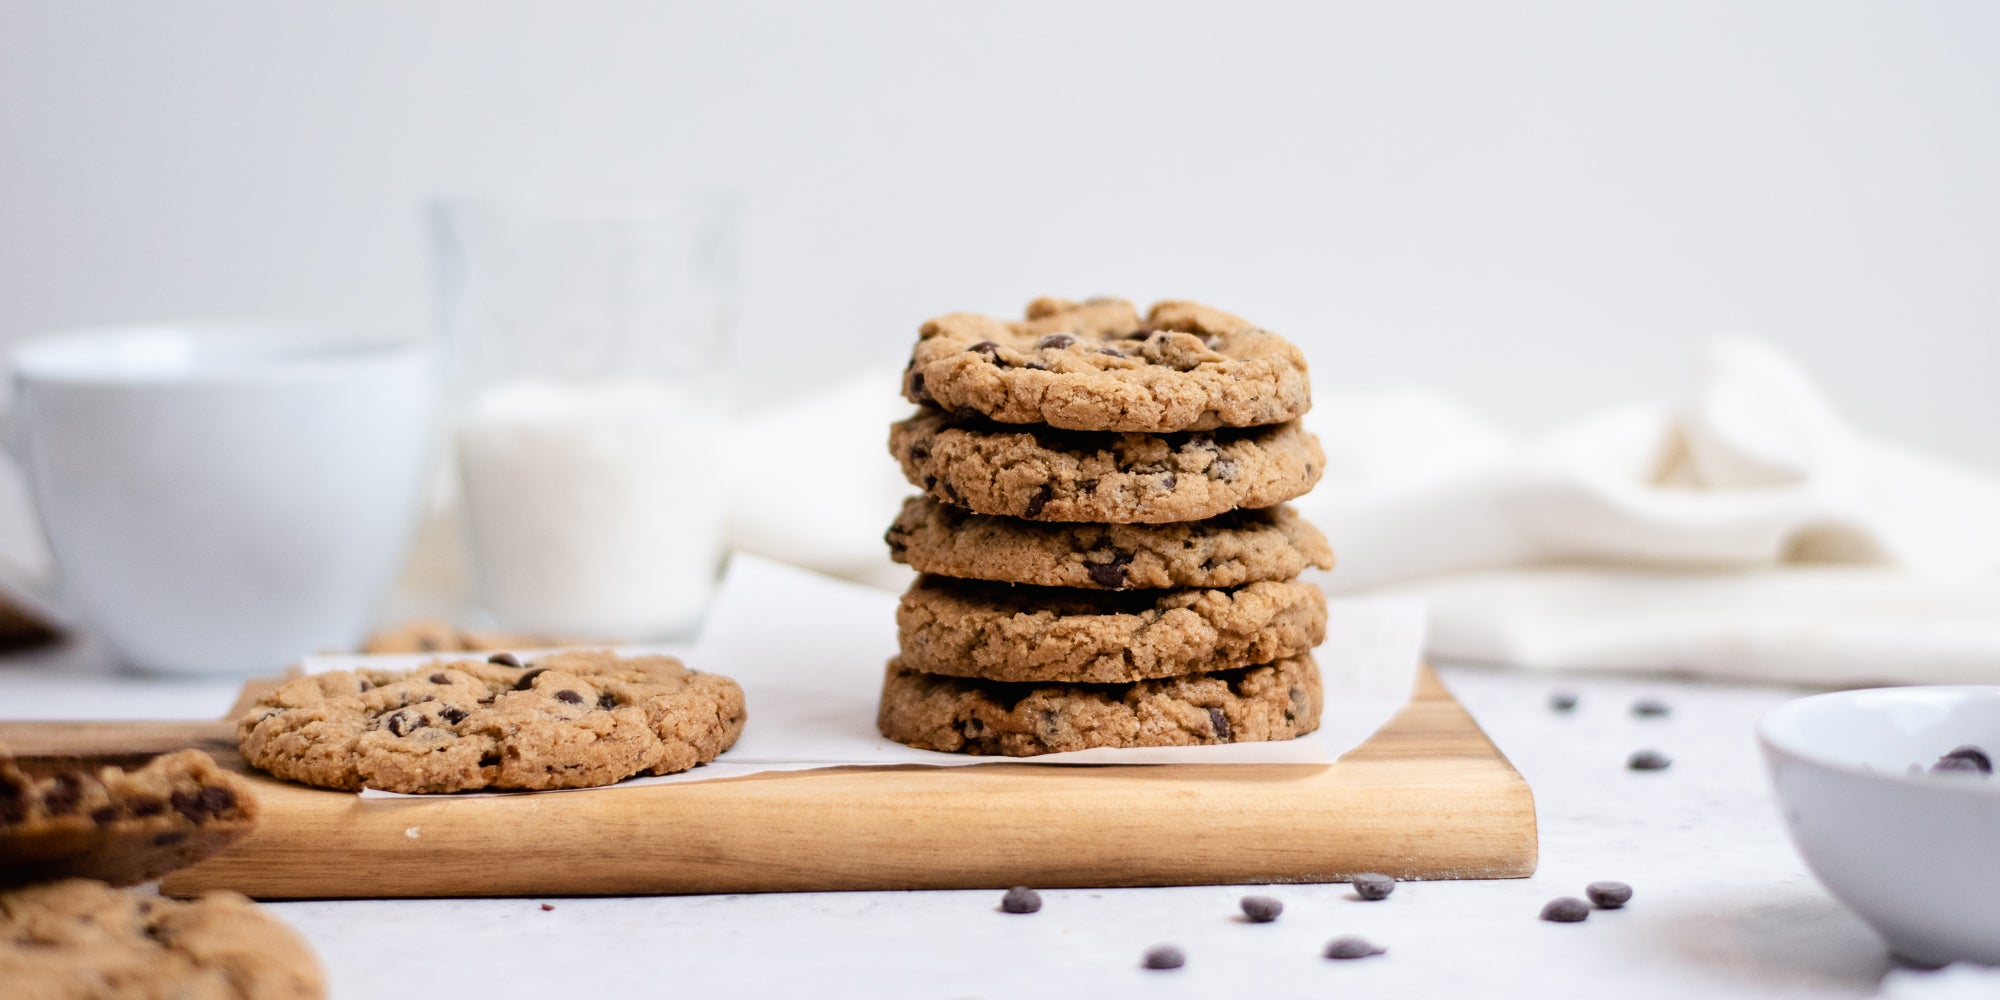 Side on view of a stack of vegan and gluten free chocolate chip cookies